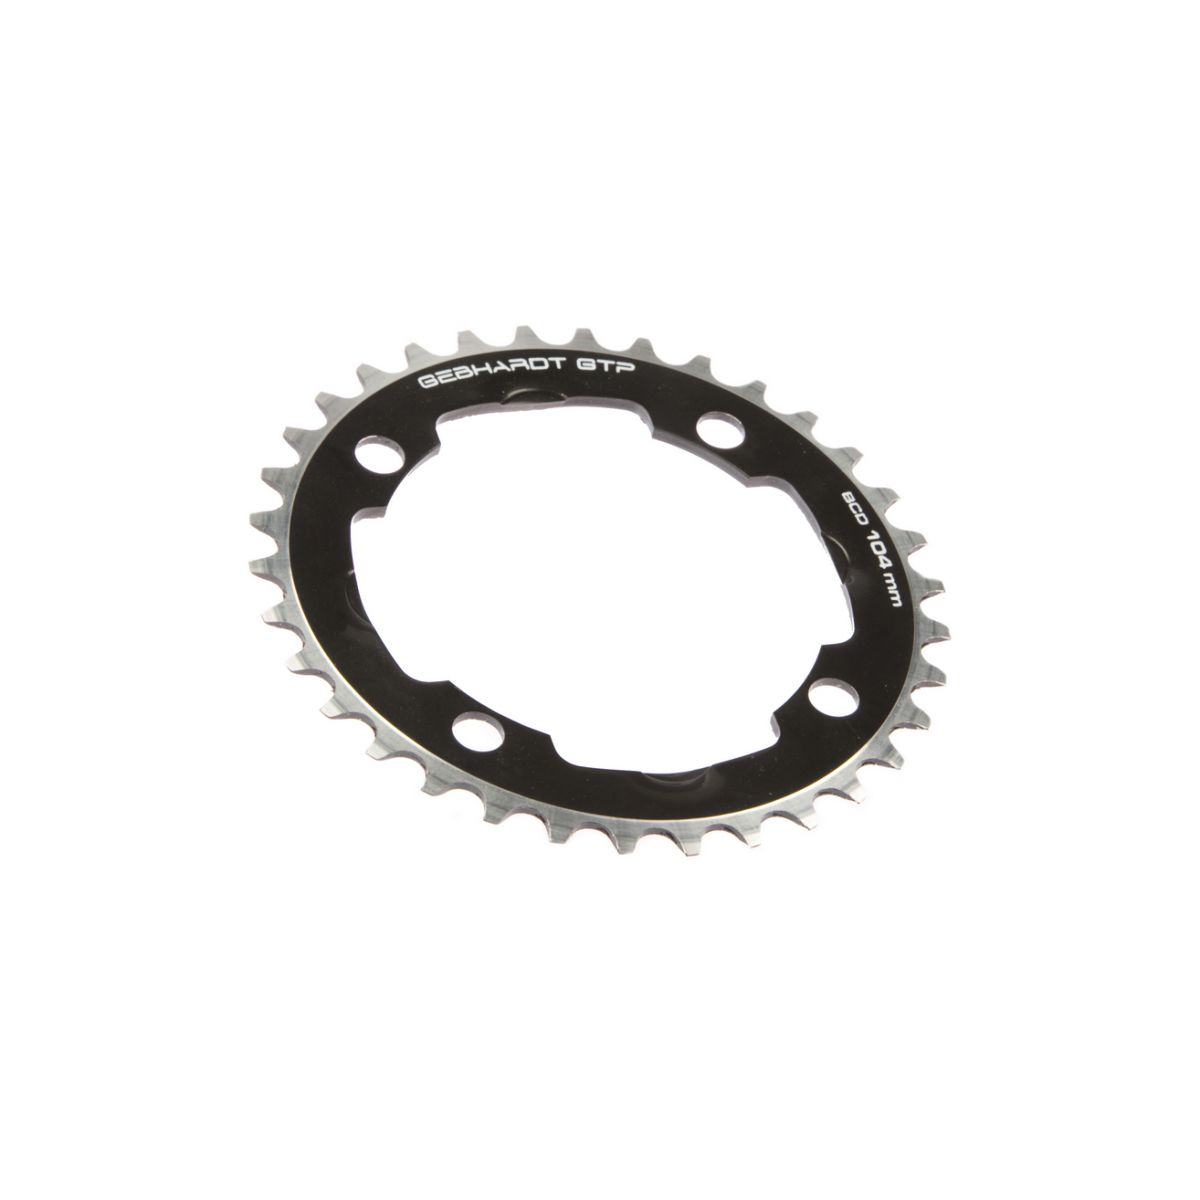 gebhardt chainring classic bcd 104 mm 4hole 37t black